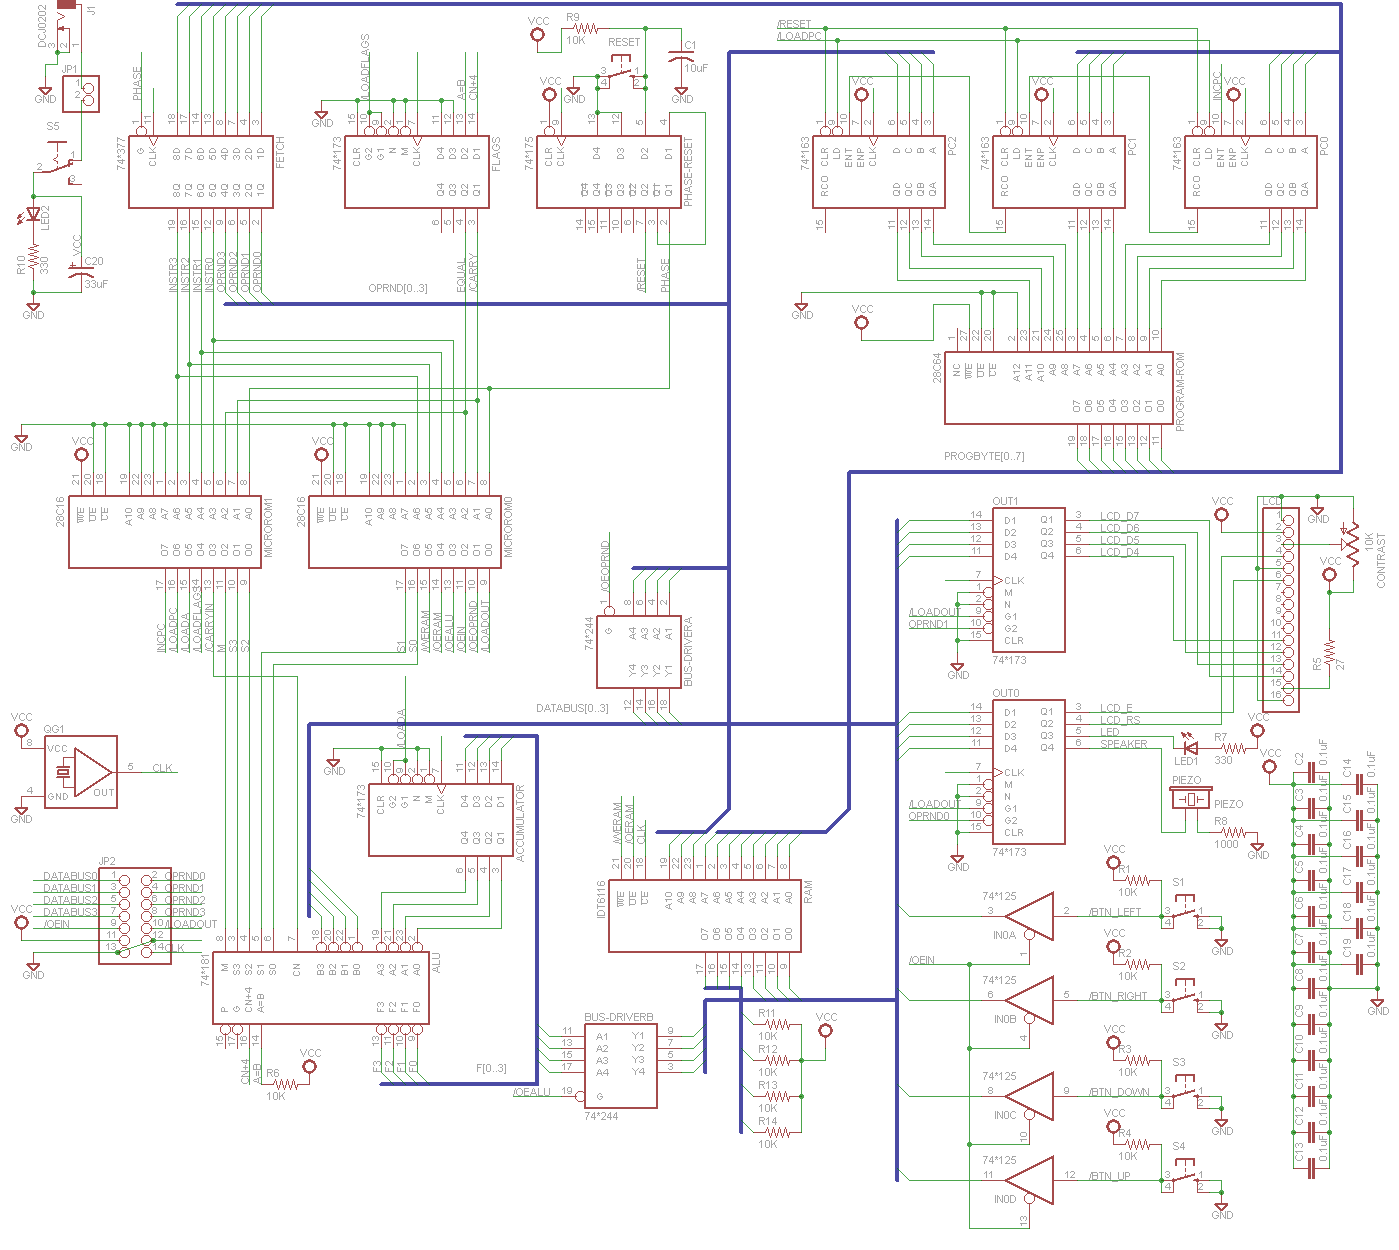 custom 4 bit cpu schematic and control big mess o\u0027 wires A5 Processor Schematic enough